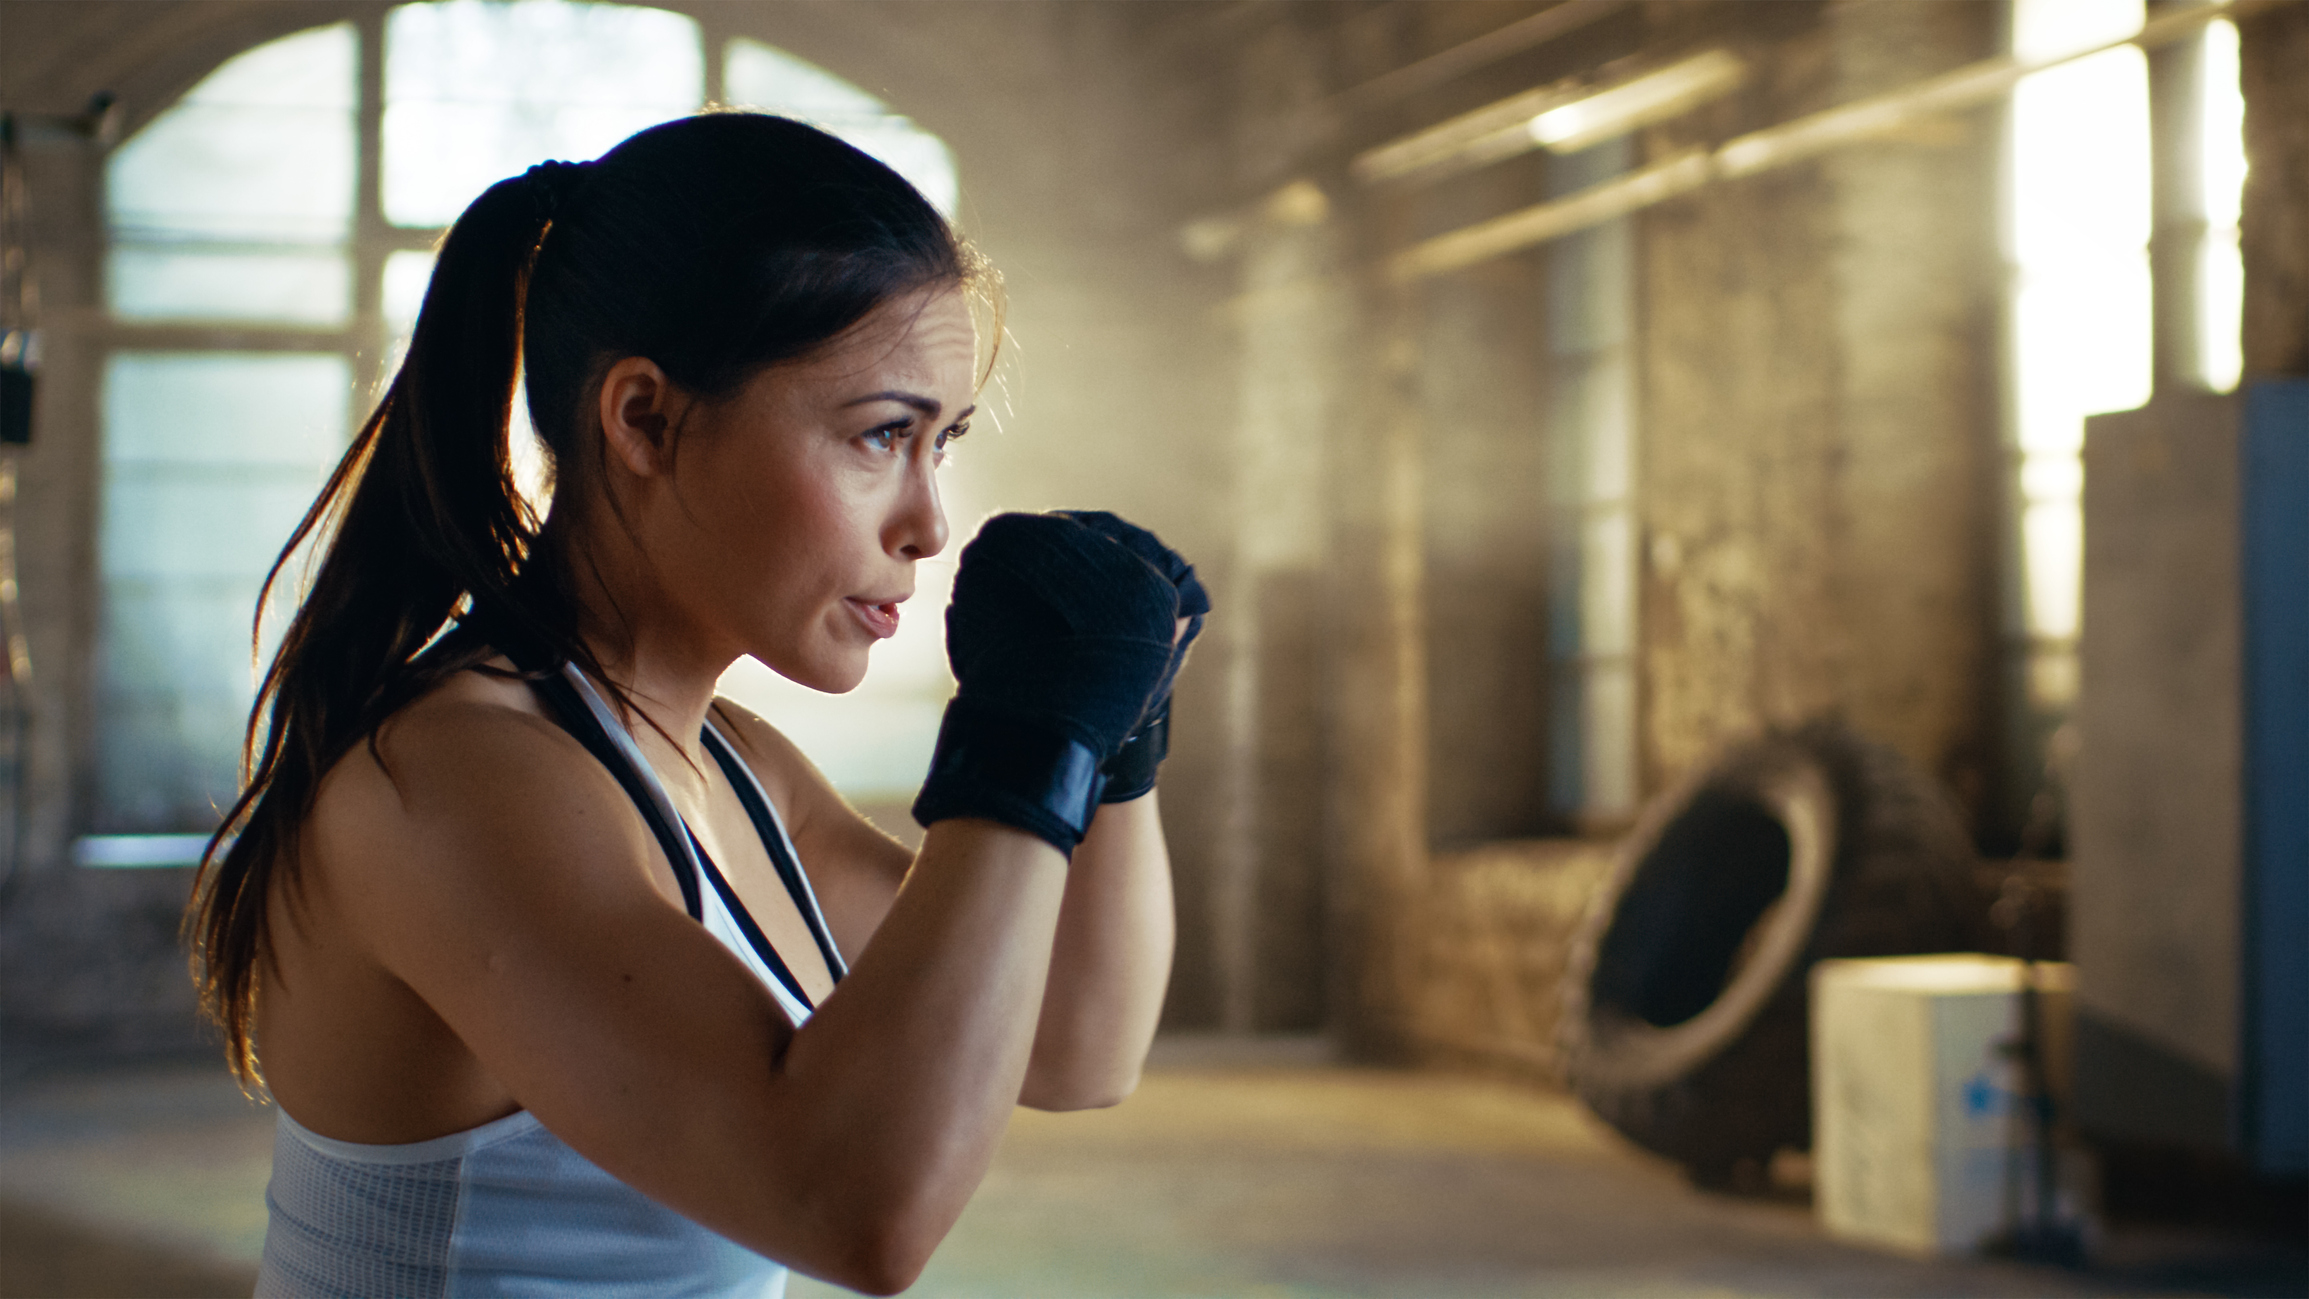 What to Expect when you Join a Boxing Gym - First Day Advice | WBCME